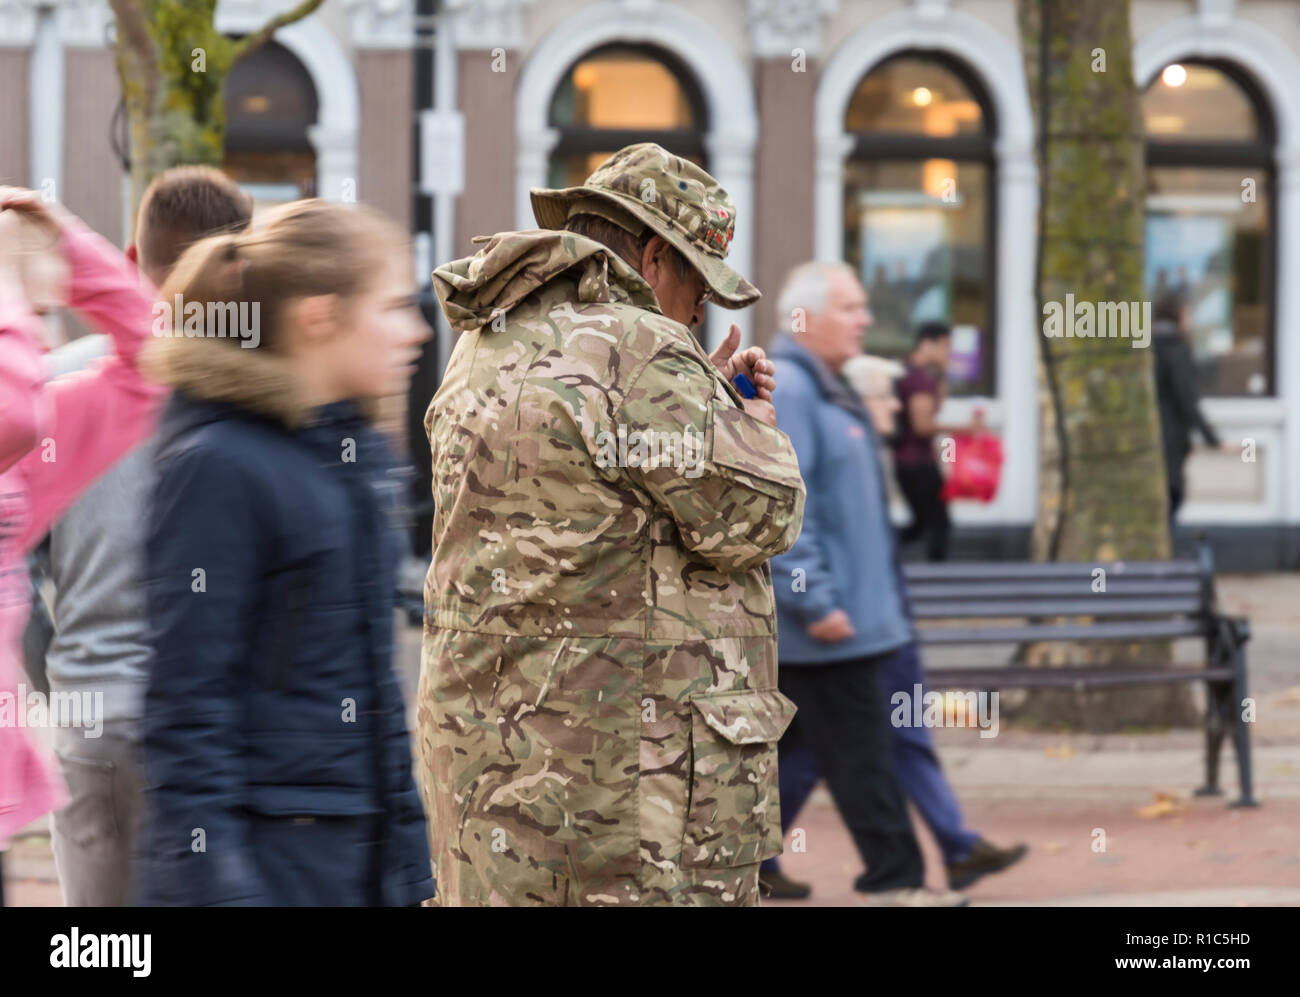 Middle aged man in military uniform on a busy public street lighting a cigarette, in the UK. Passive smoking. - Stock Image